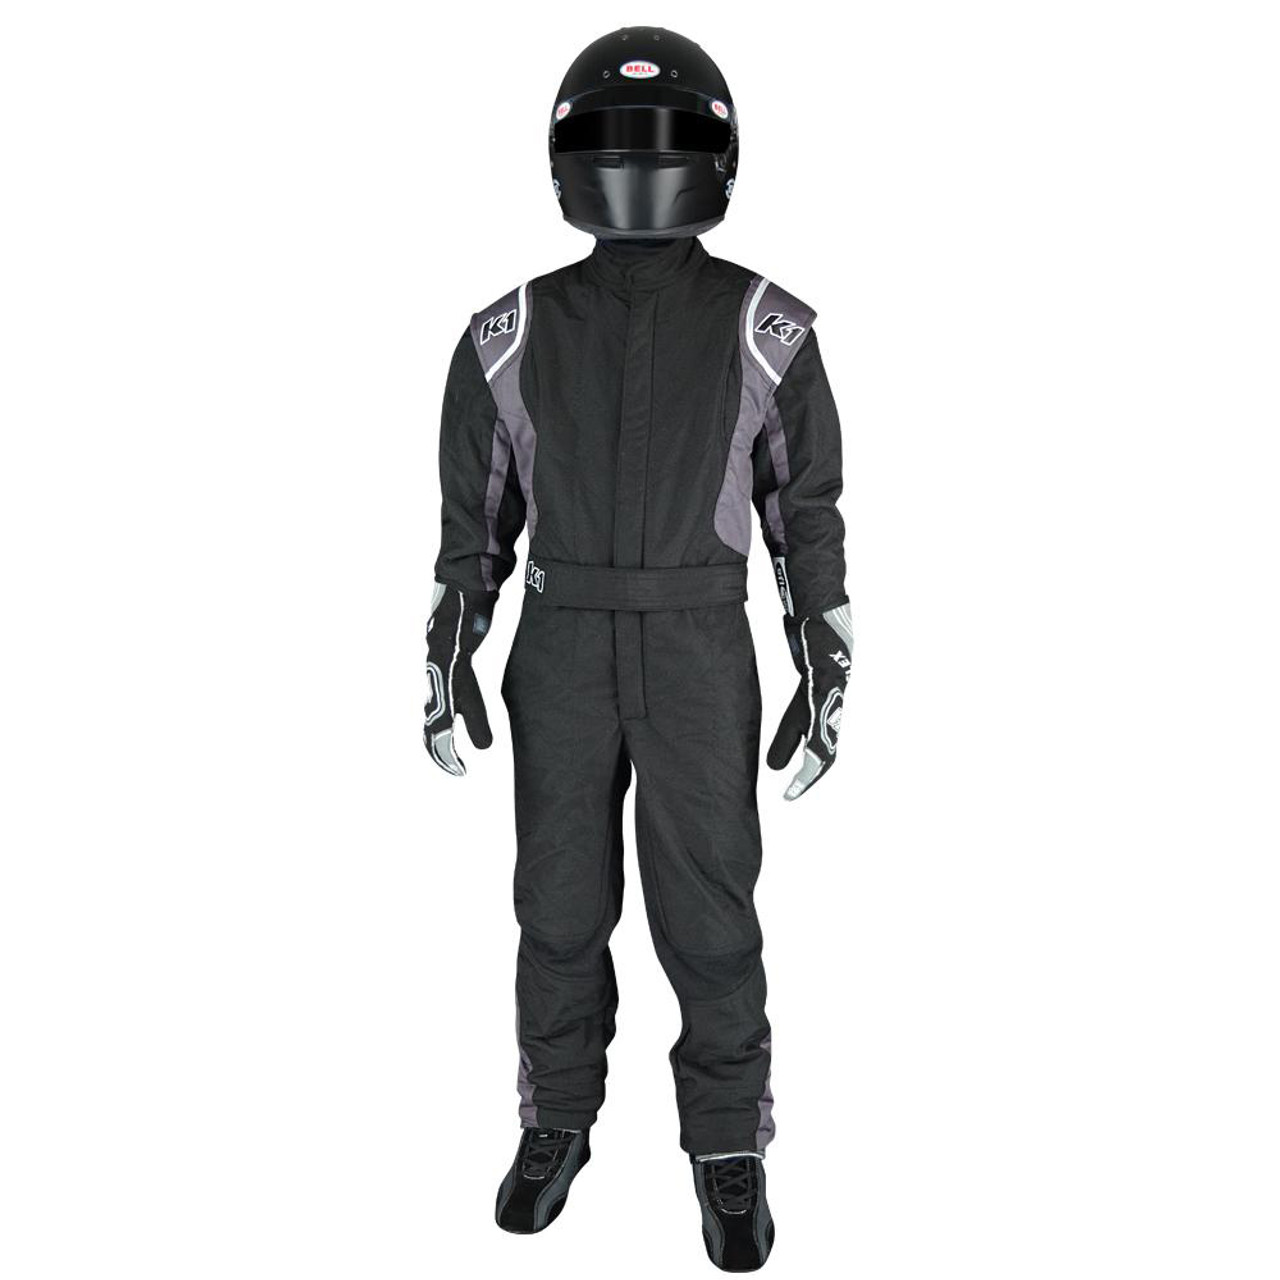 K1 Racegear Suit, Precision II, Driving, 1 Piece, SFI 3.2A/5, Double Layer, Nomex, Black / Gray, Youth